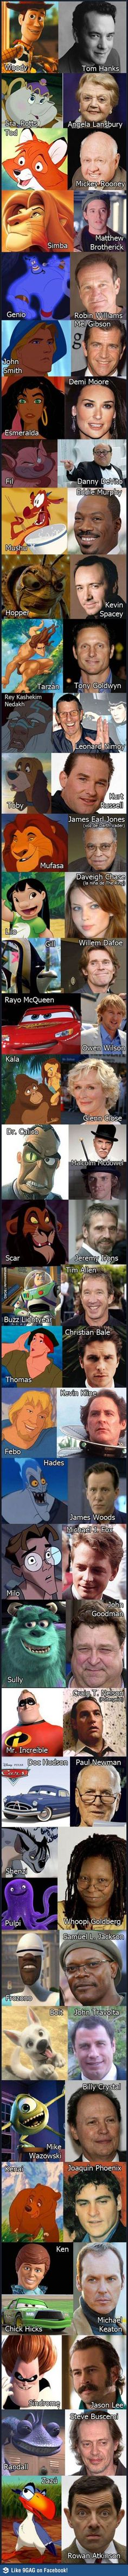 Who voiced who--->Disney characters